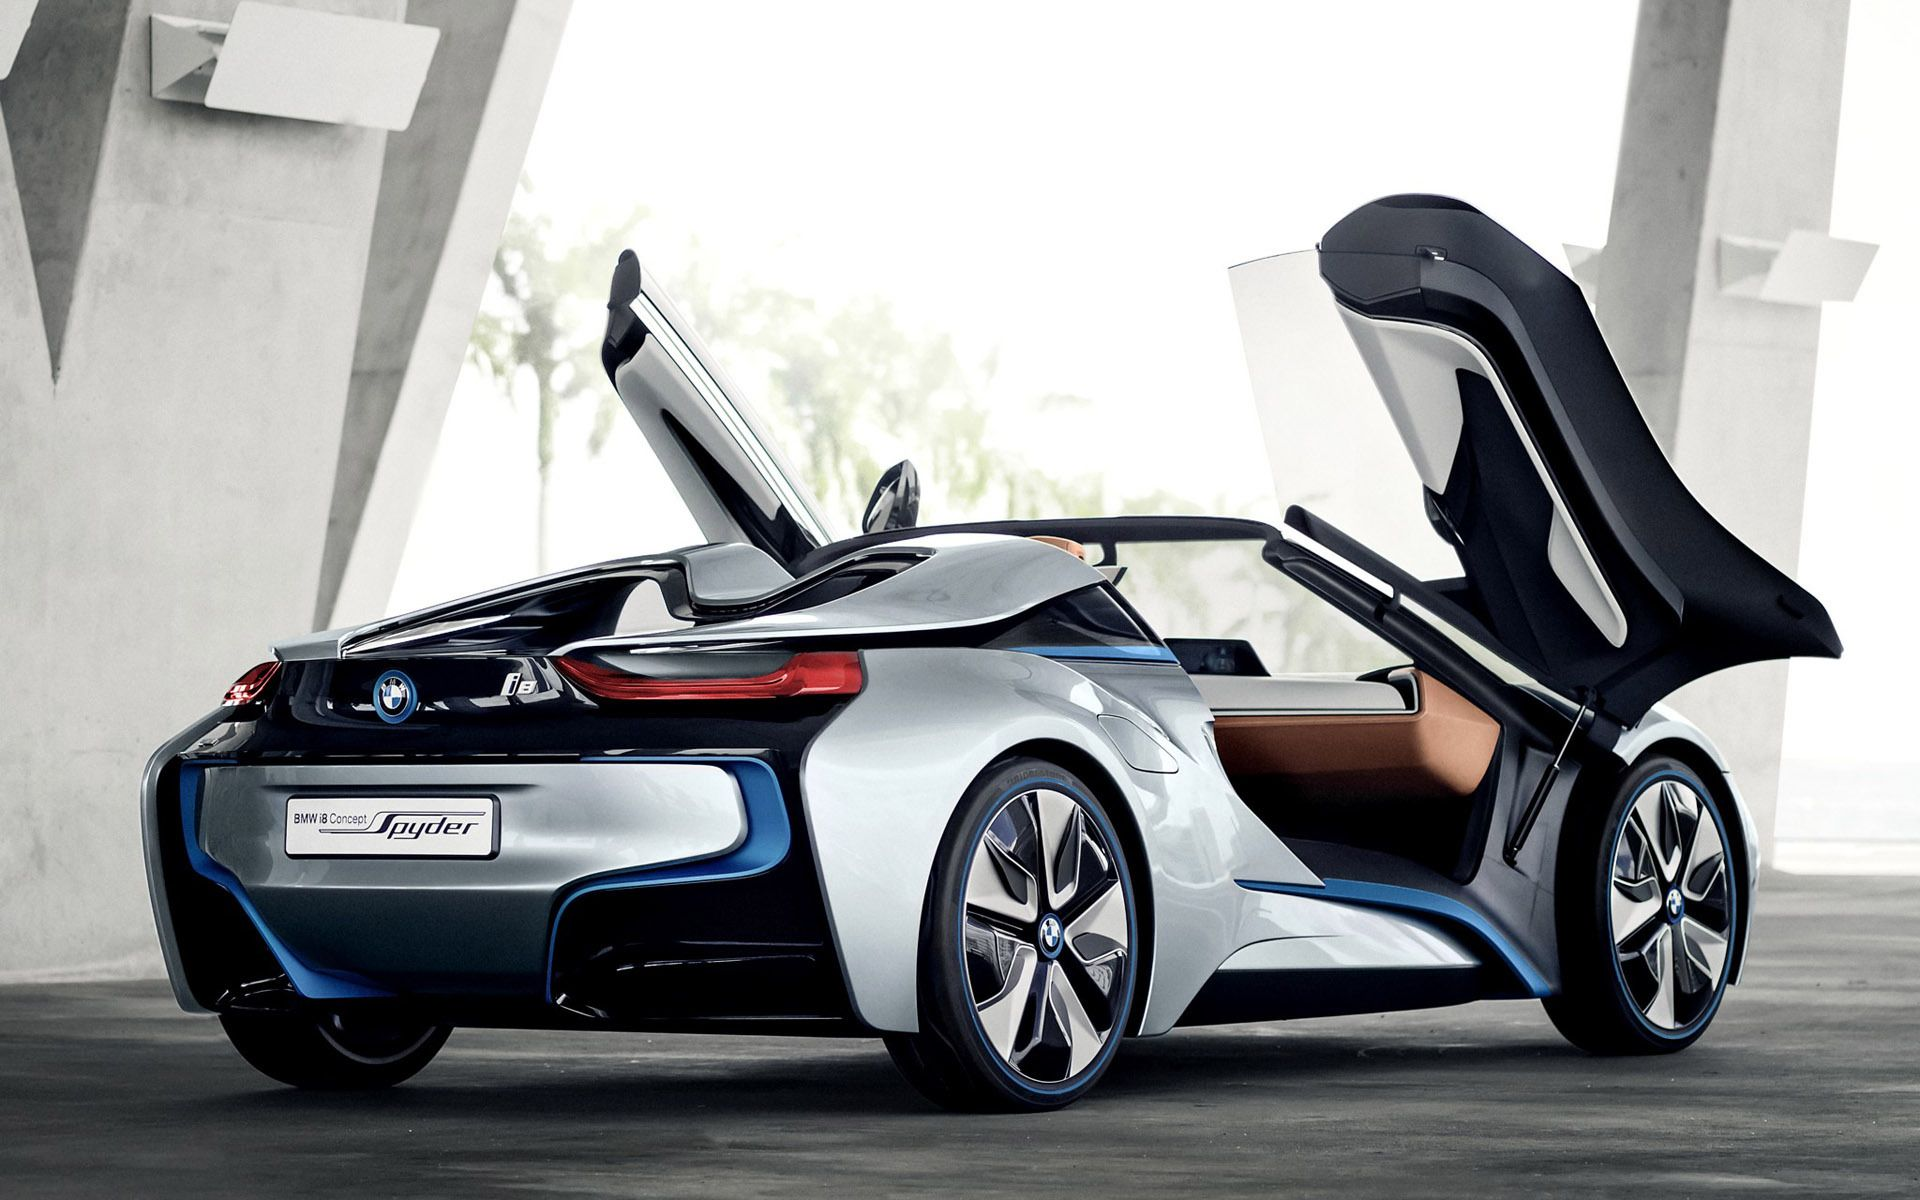 The bmw spyder concept is a plug in hybrid two seat sports car featuring a carbon fibre reinforced plastic passenger cell further information at www